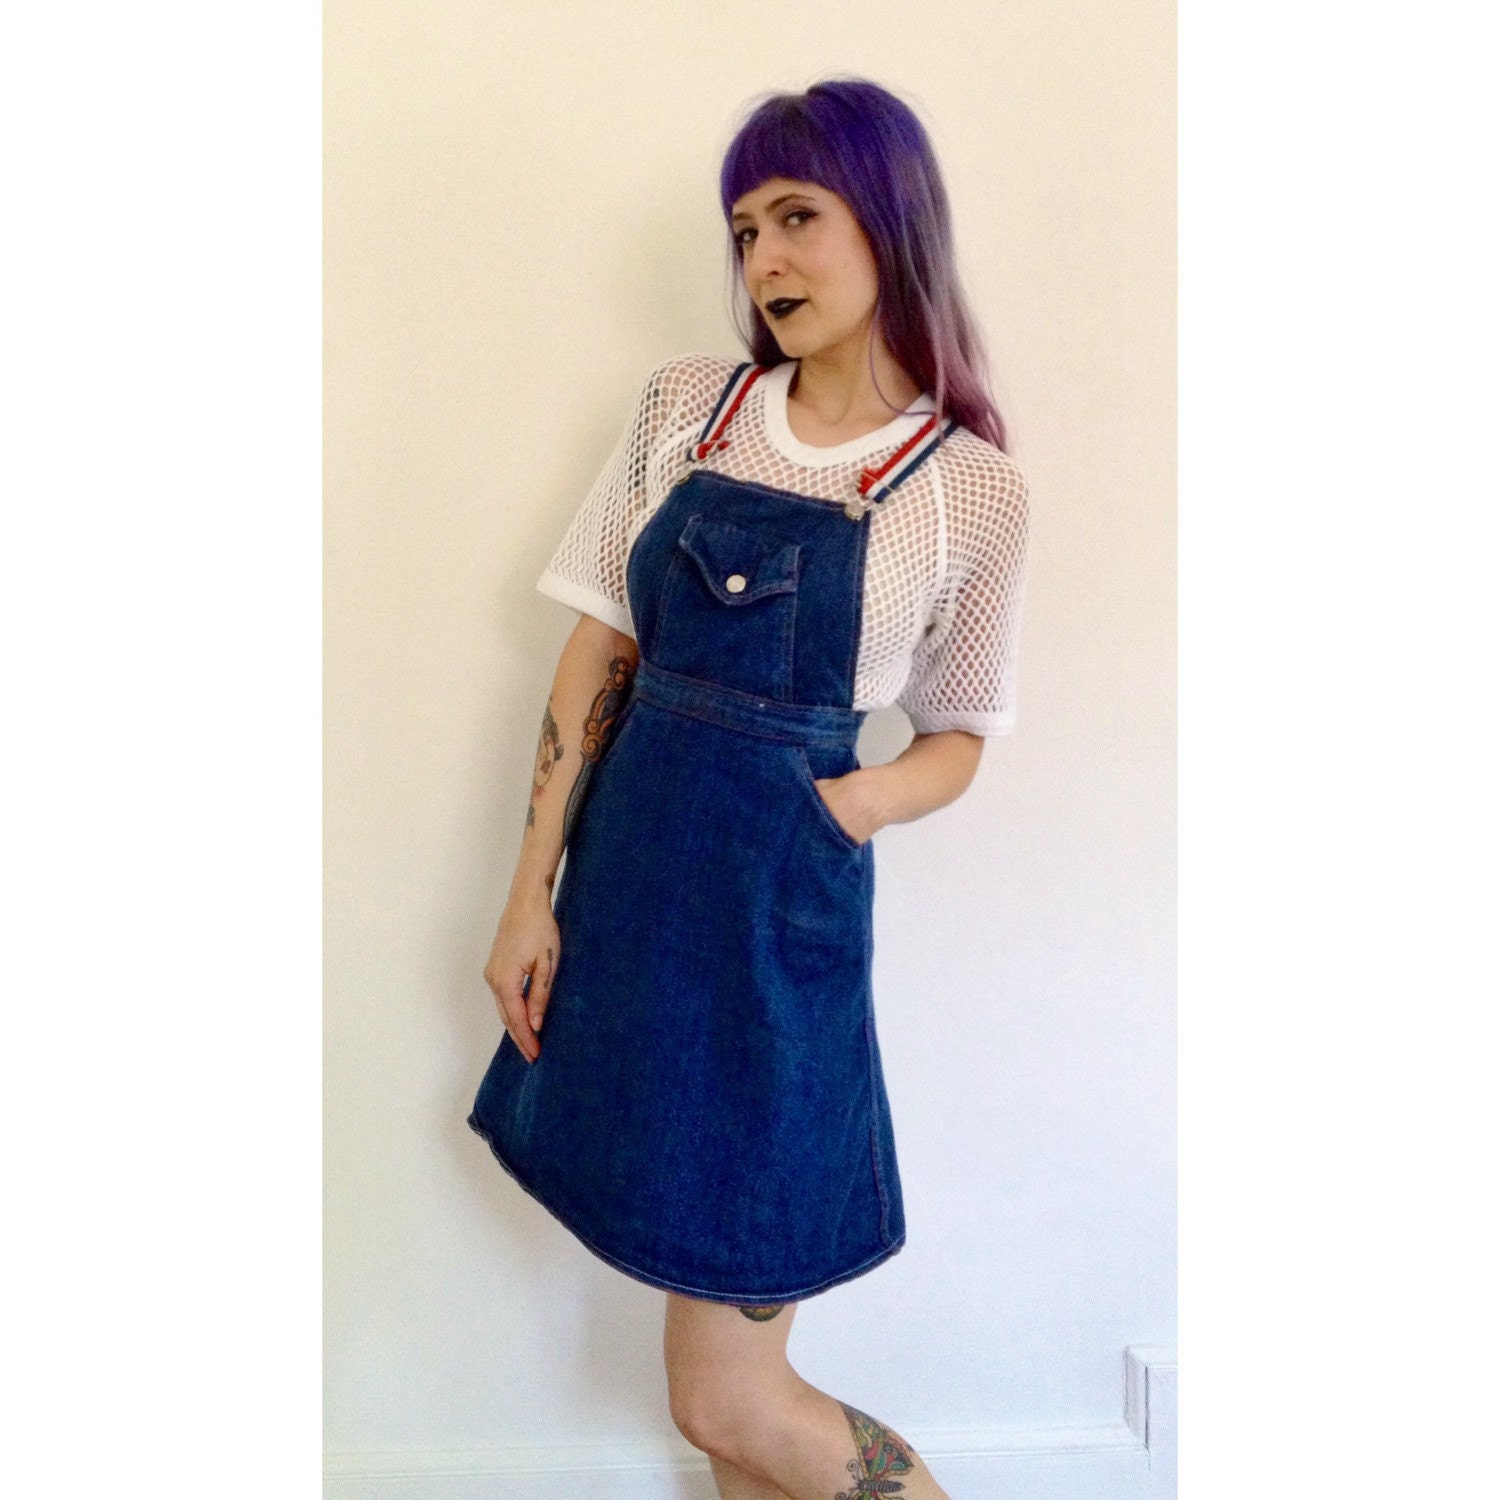 b21a48a3af SALE 70 s Denim Pinafore Dress Extra Small - XS Jean Overall Dress - Red  White Blue Jean Dress - Patriotic Vintage 1970s Jumper Mini Dress. gallery  photo ...